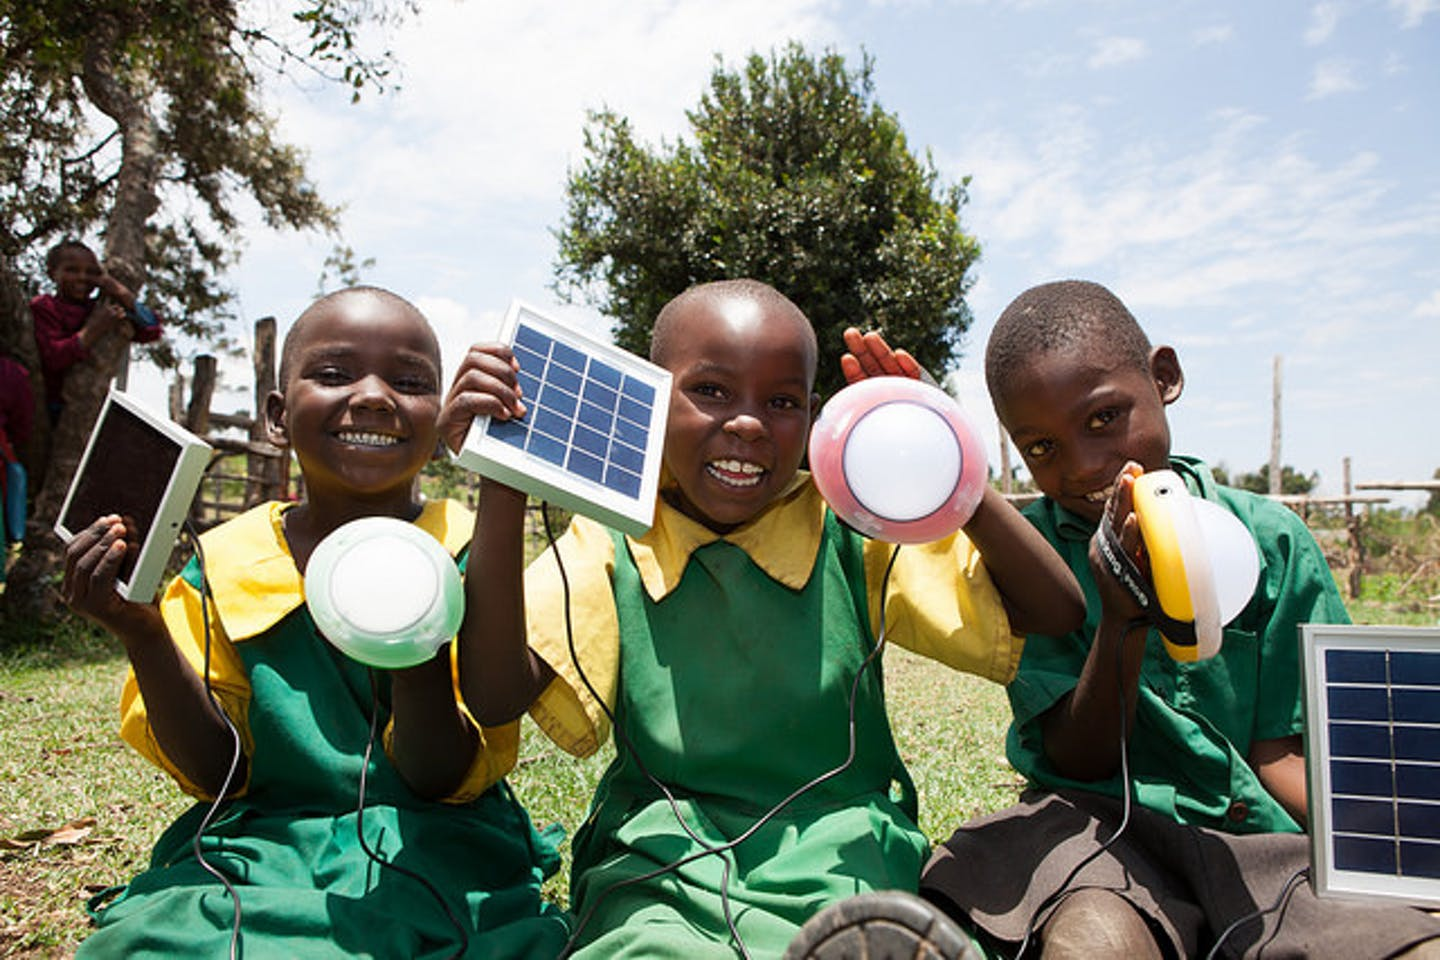 Kembu schoolkids with solar